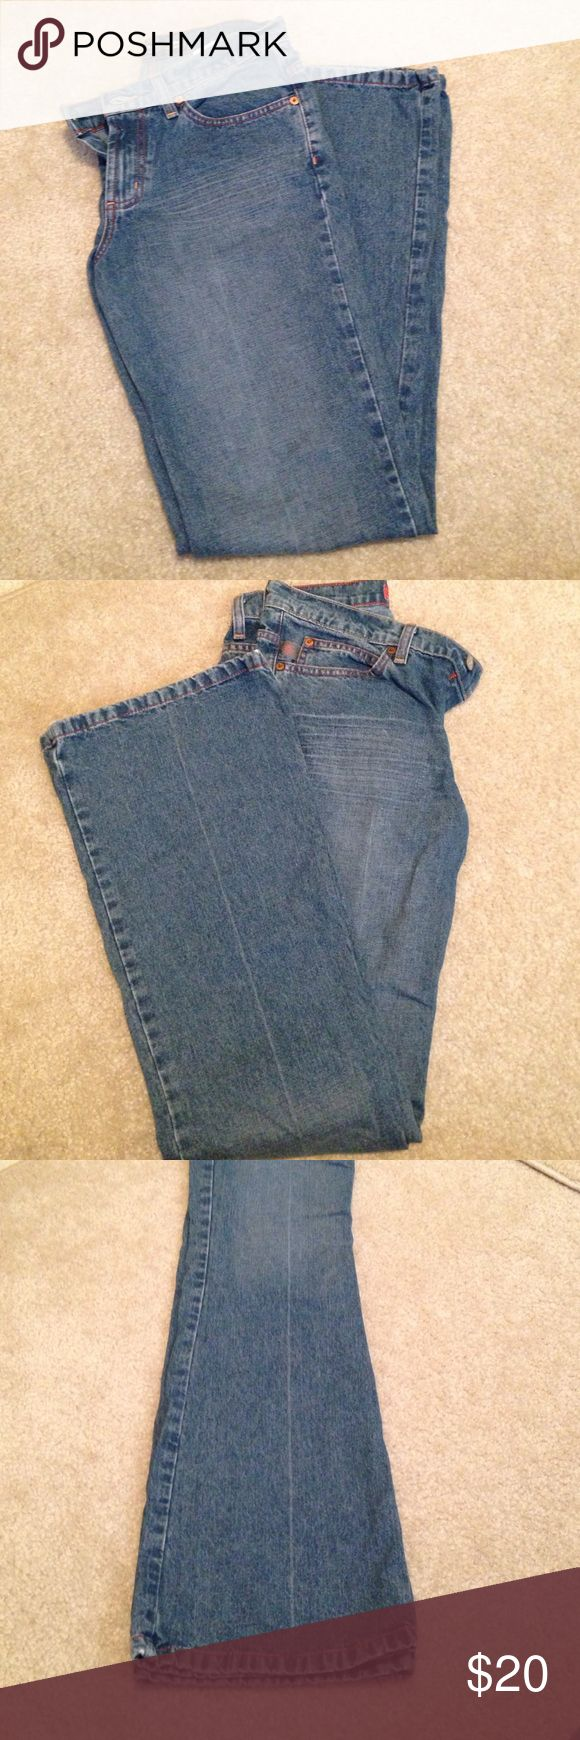 Energie jeans size 5/6 Inseam is 32 inches. Size 5/6. Style 7398JD14434. Energie jeans  Jeans